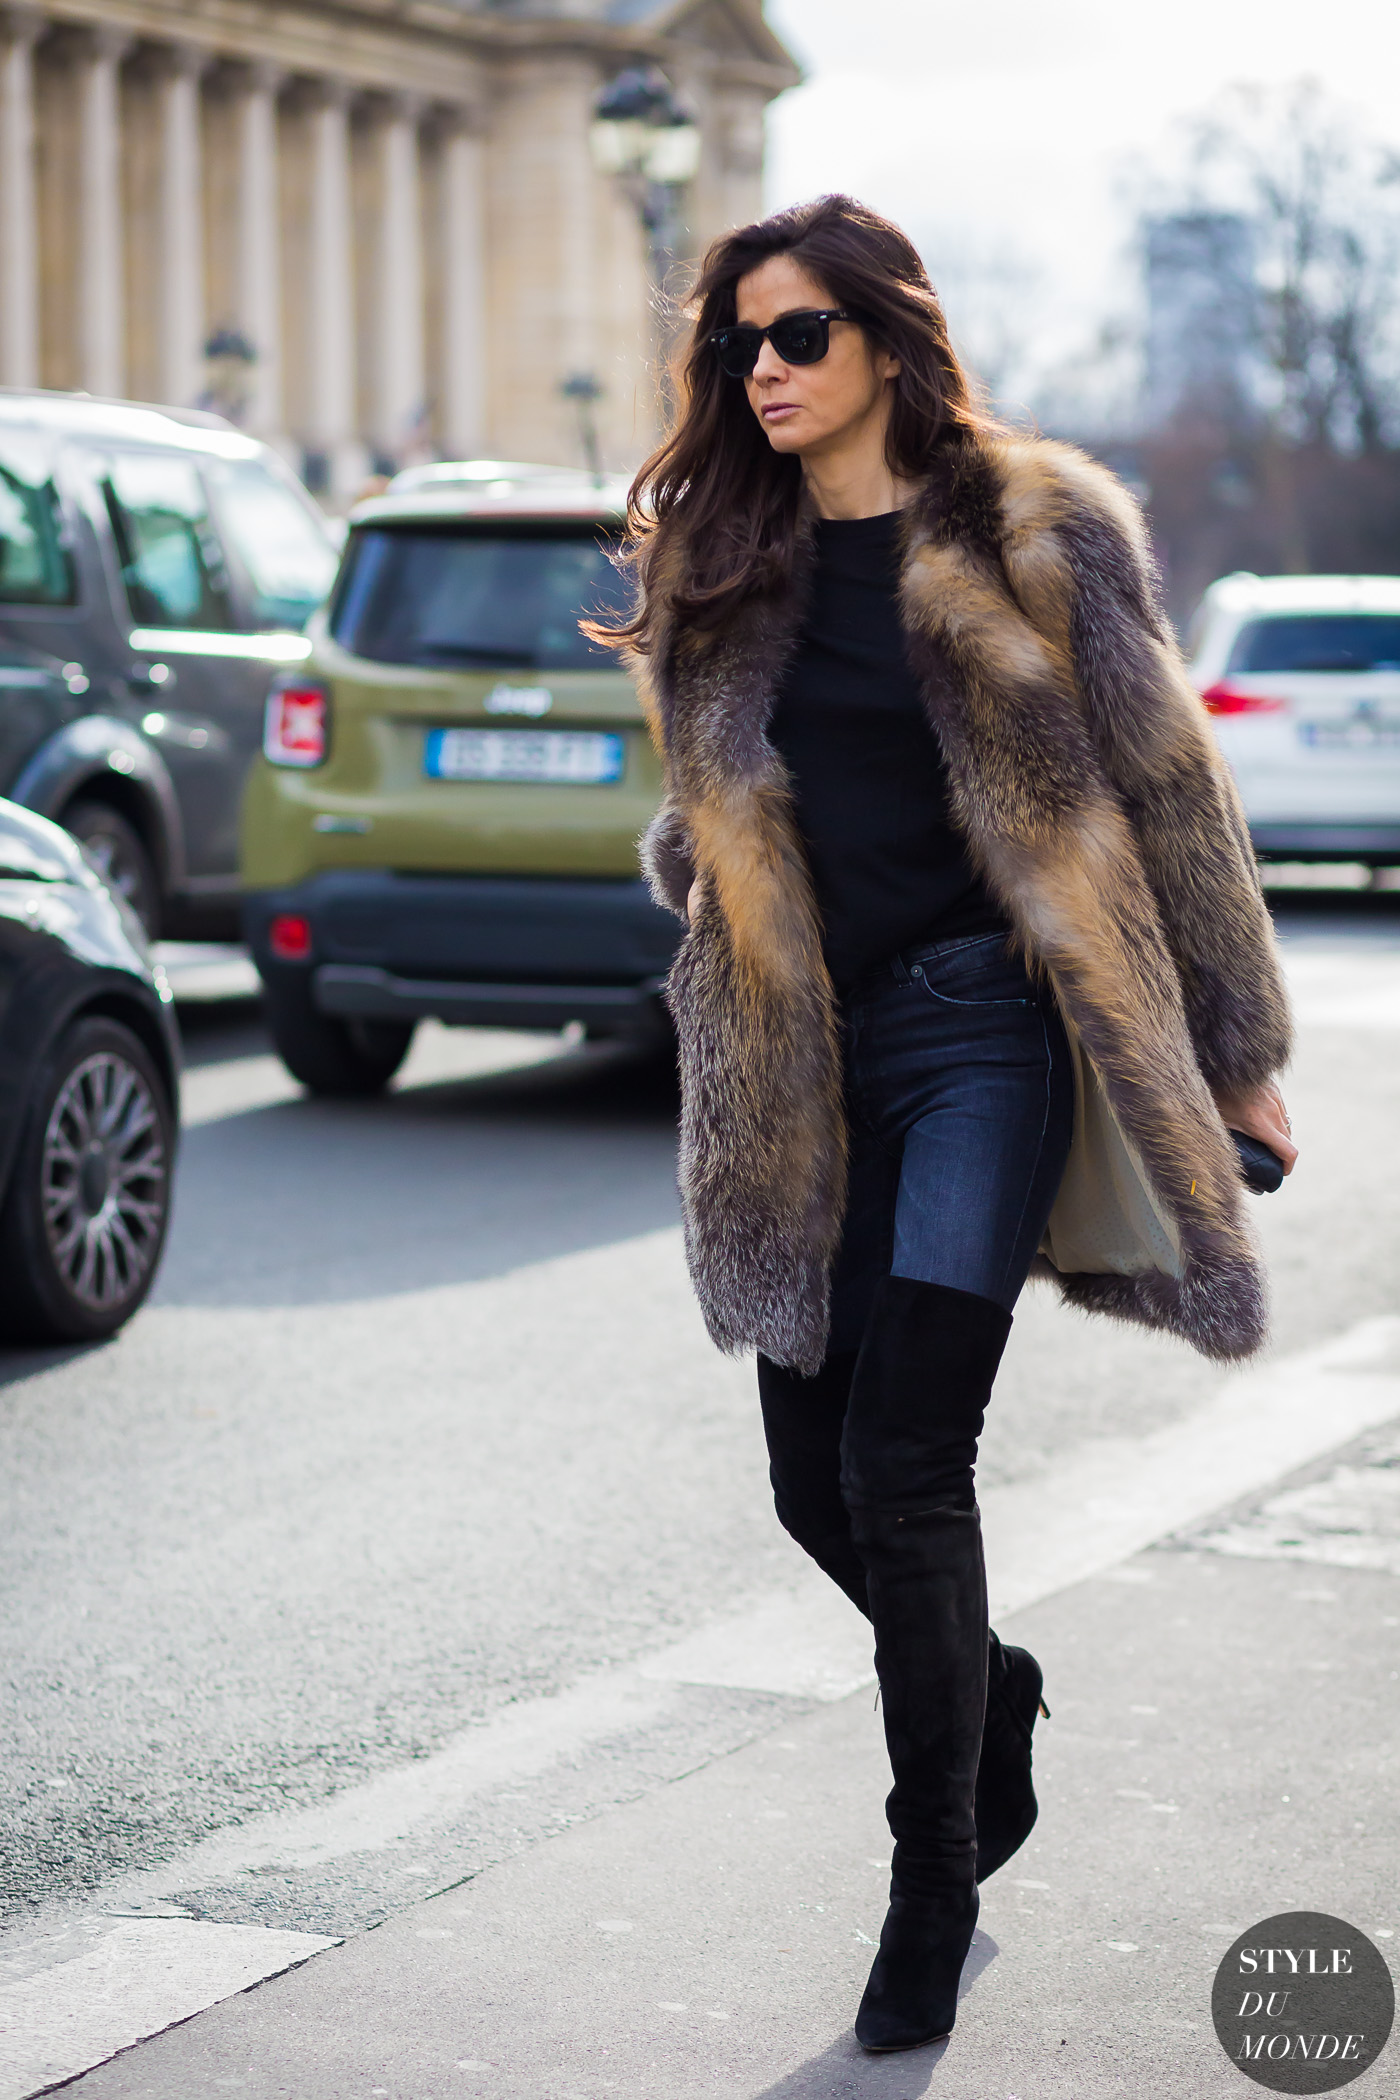 Barbara Martelo Street Style Street Fashion Streetsnaps by STYLEDUMONDE Street Style Fashion Photography